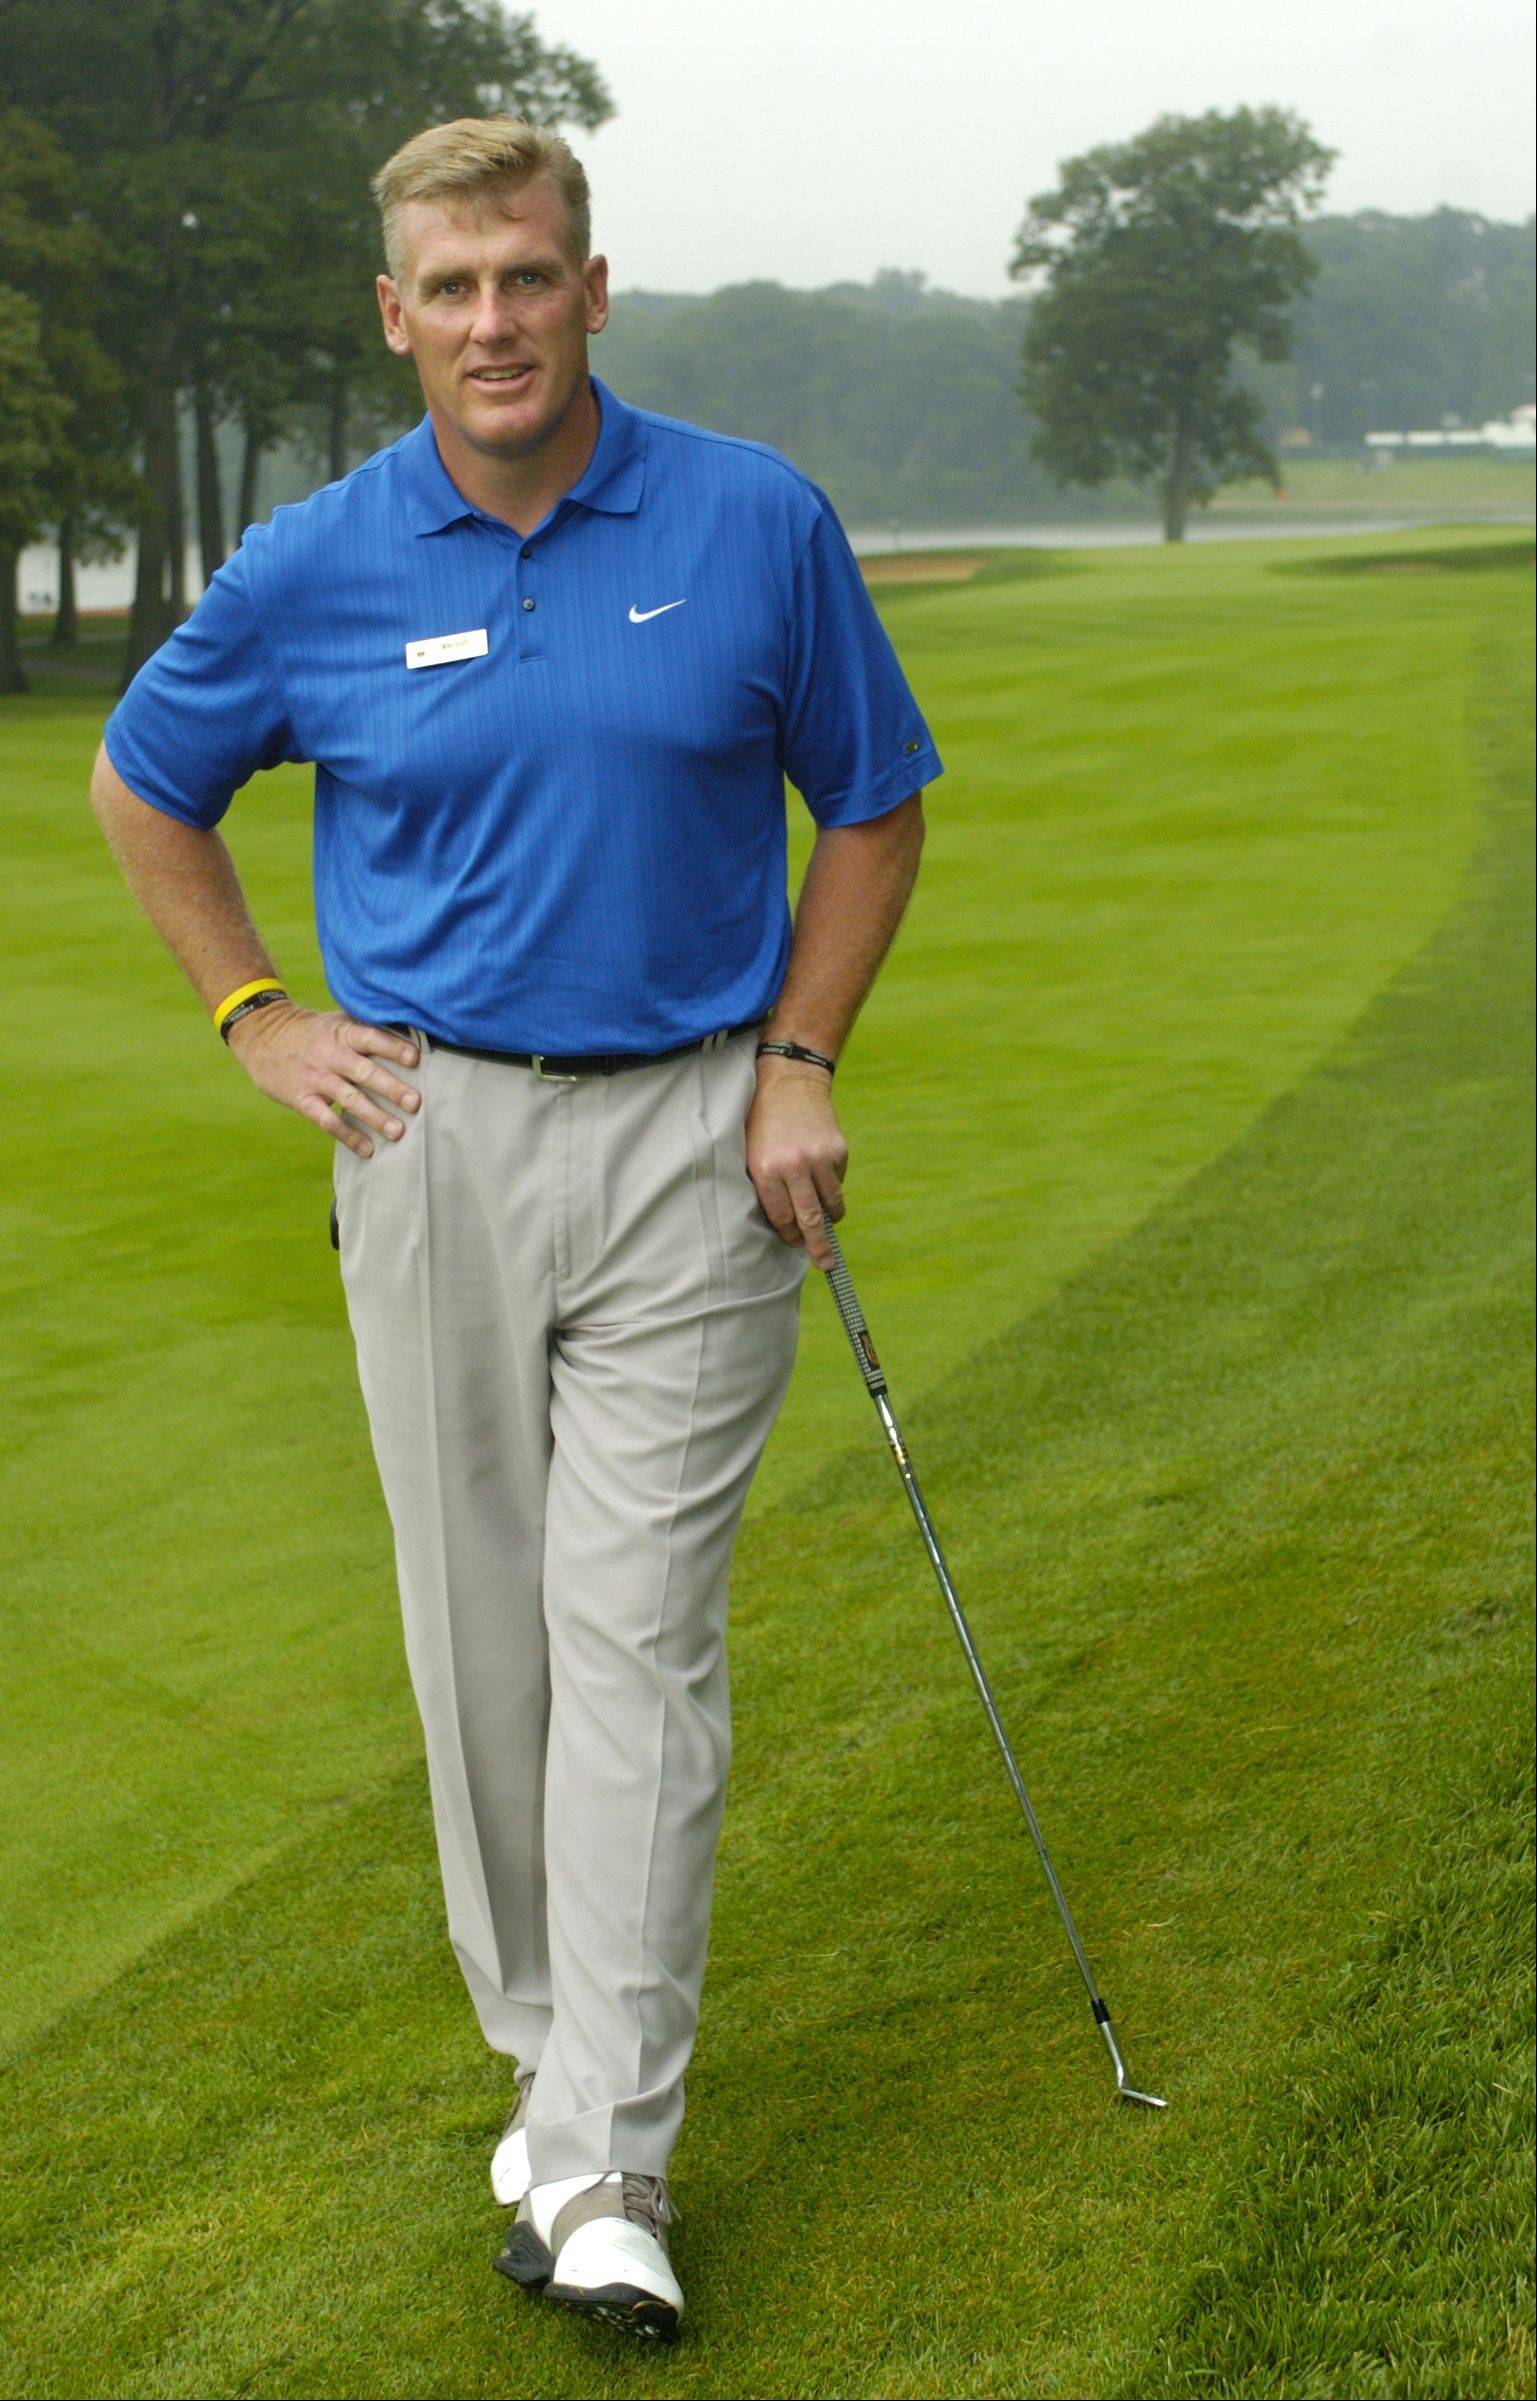 A longtime head pro, Michael Scully, a native of Mount Prospect, has been the Director of Golf at Medinah Country Club since 2010.